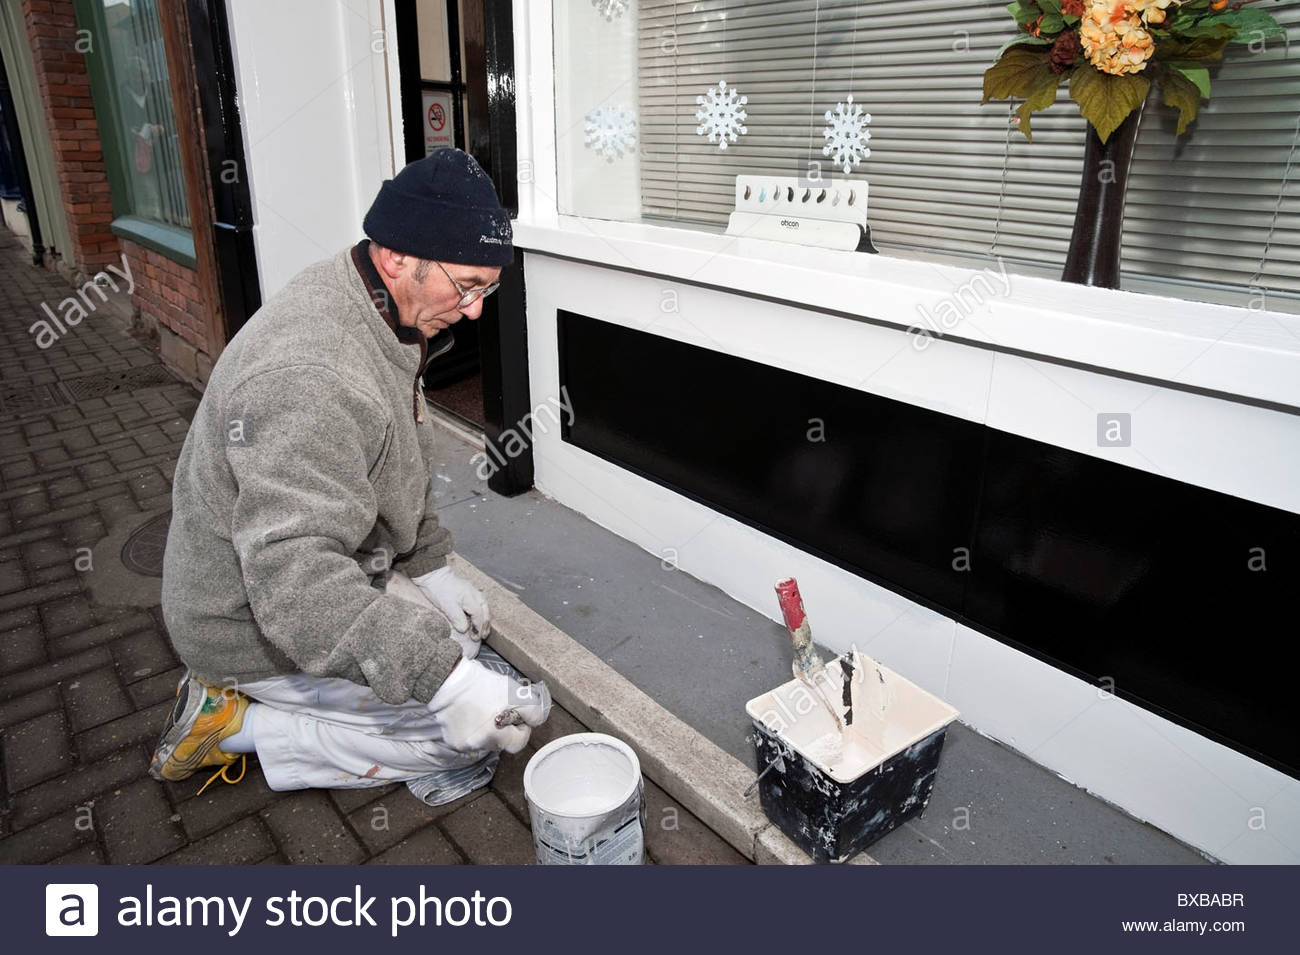 Painter & decorator at work painting a storefront, UK. Painter working outside on the exterior of a shop. - Stock Image